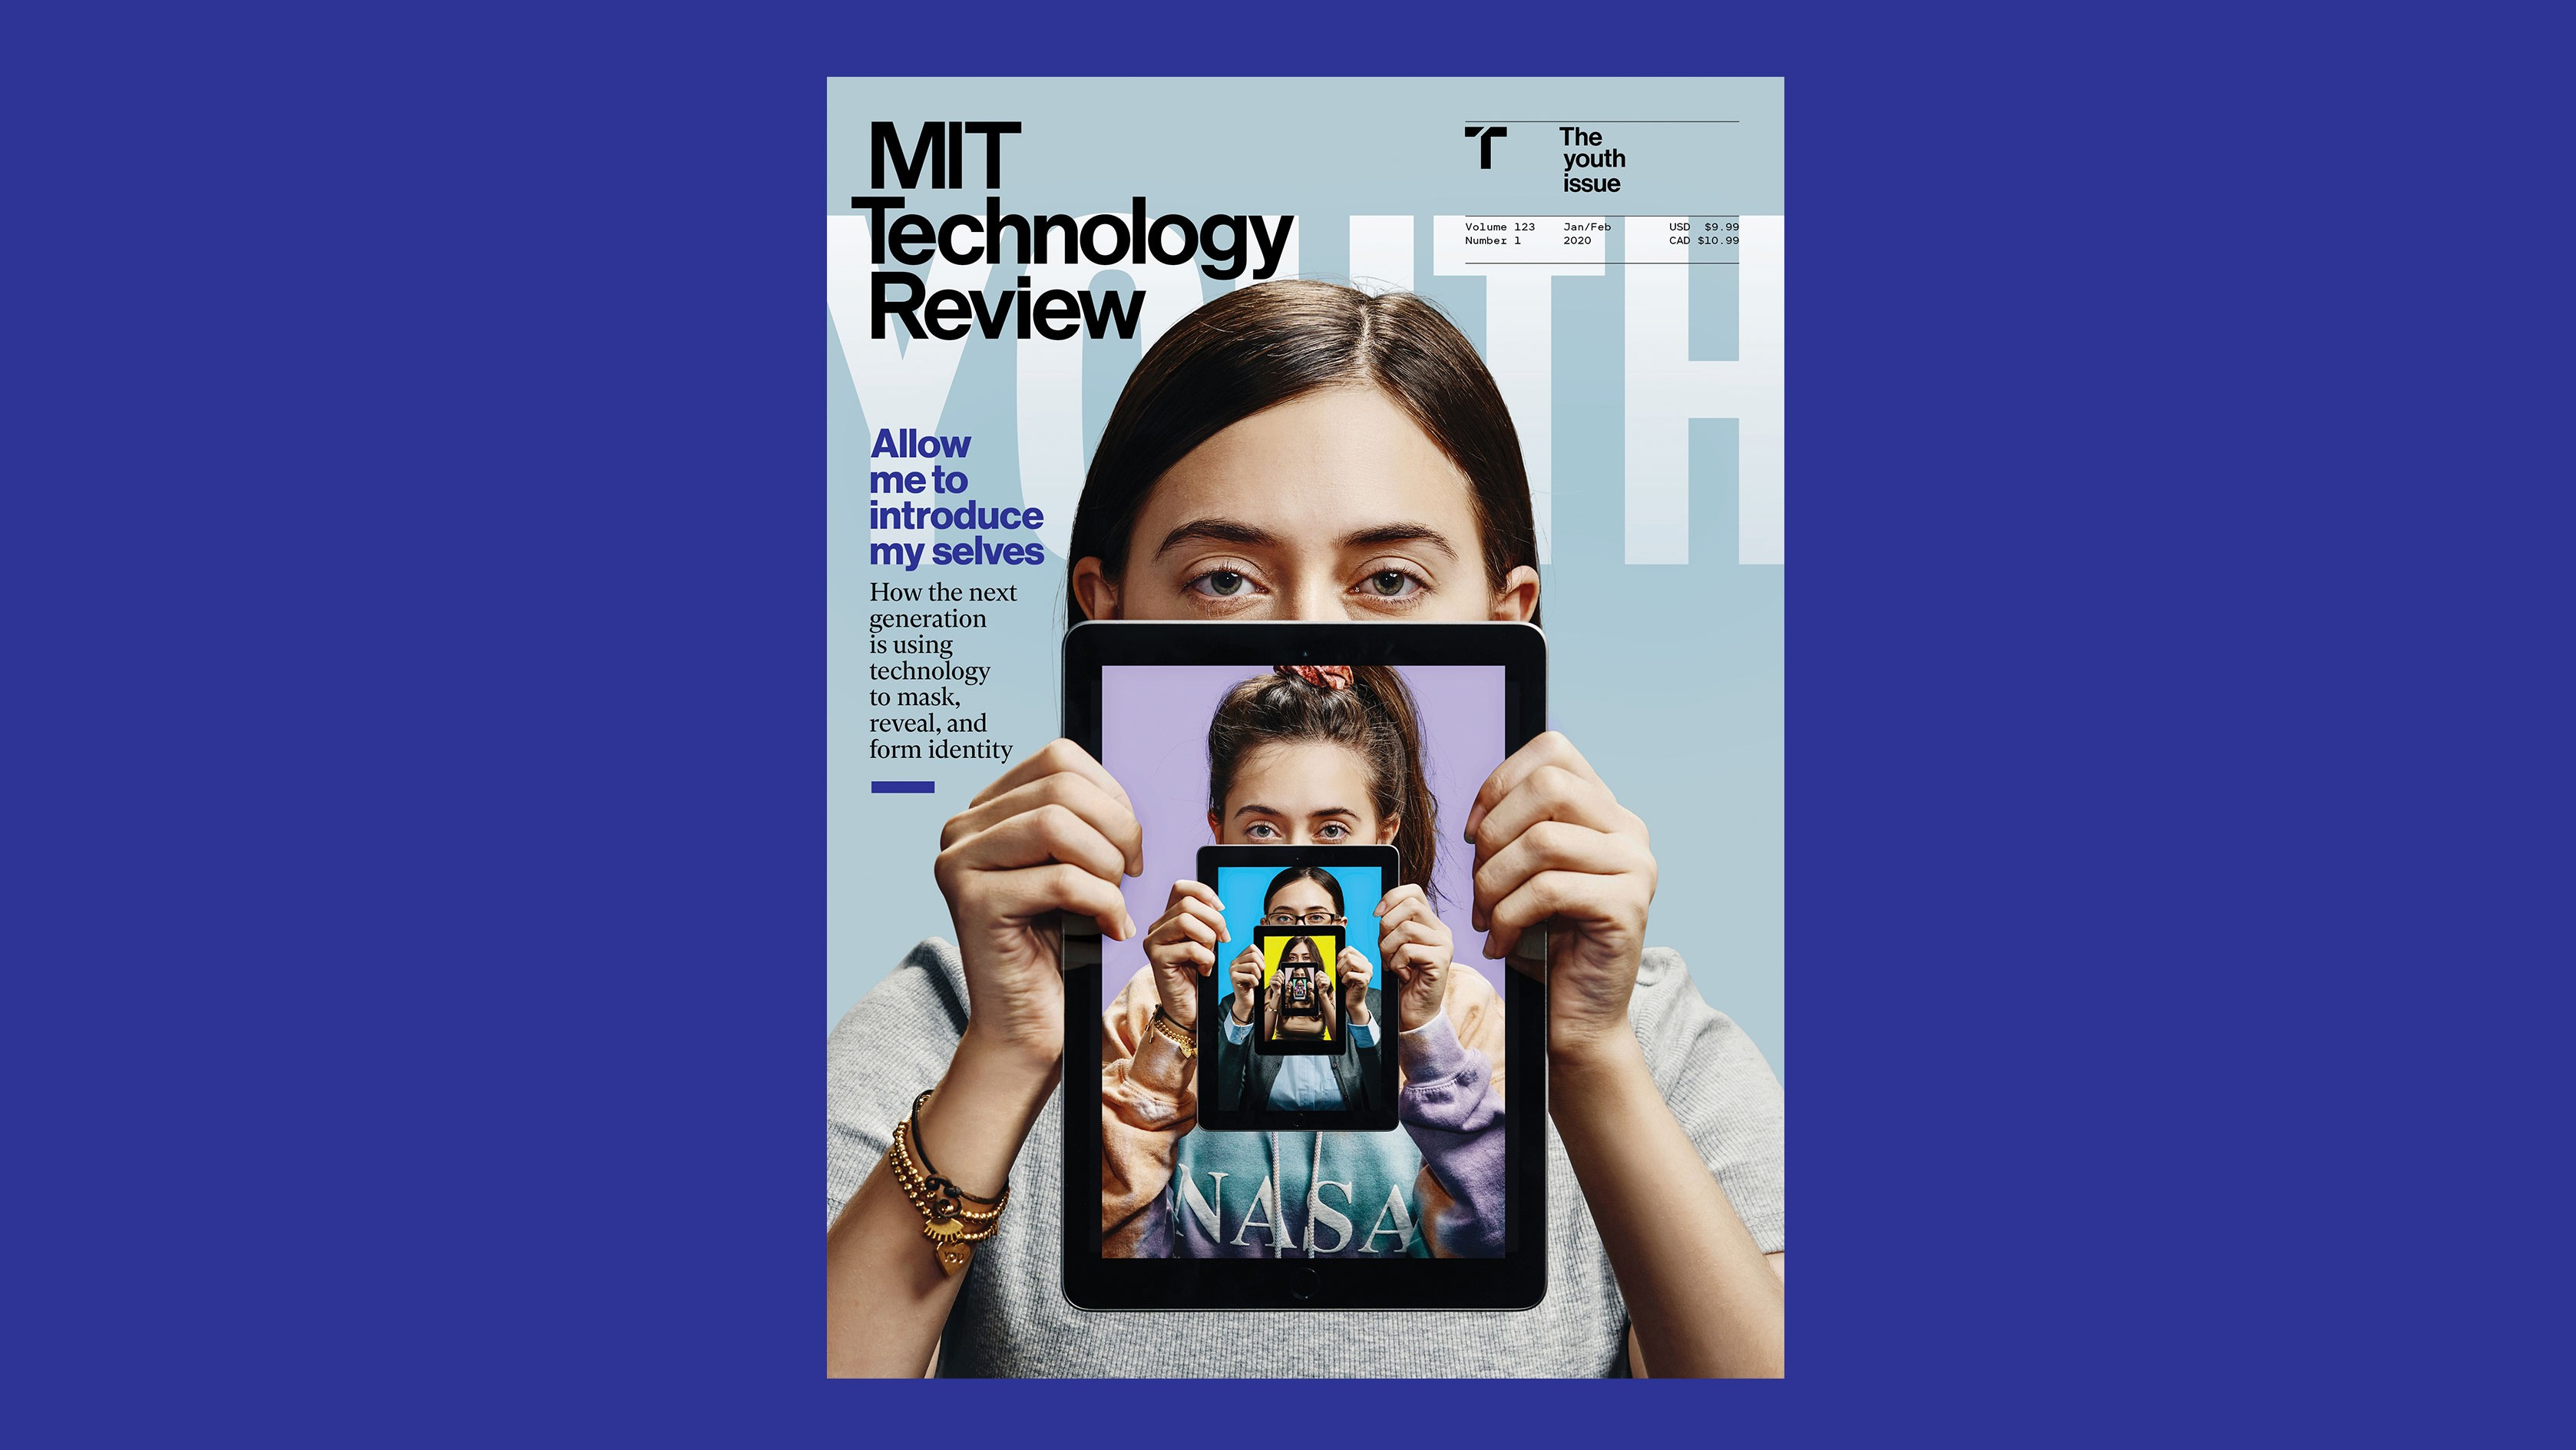 Editor's letter: How the next generation is using technology to mask, reveal, and form identity